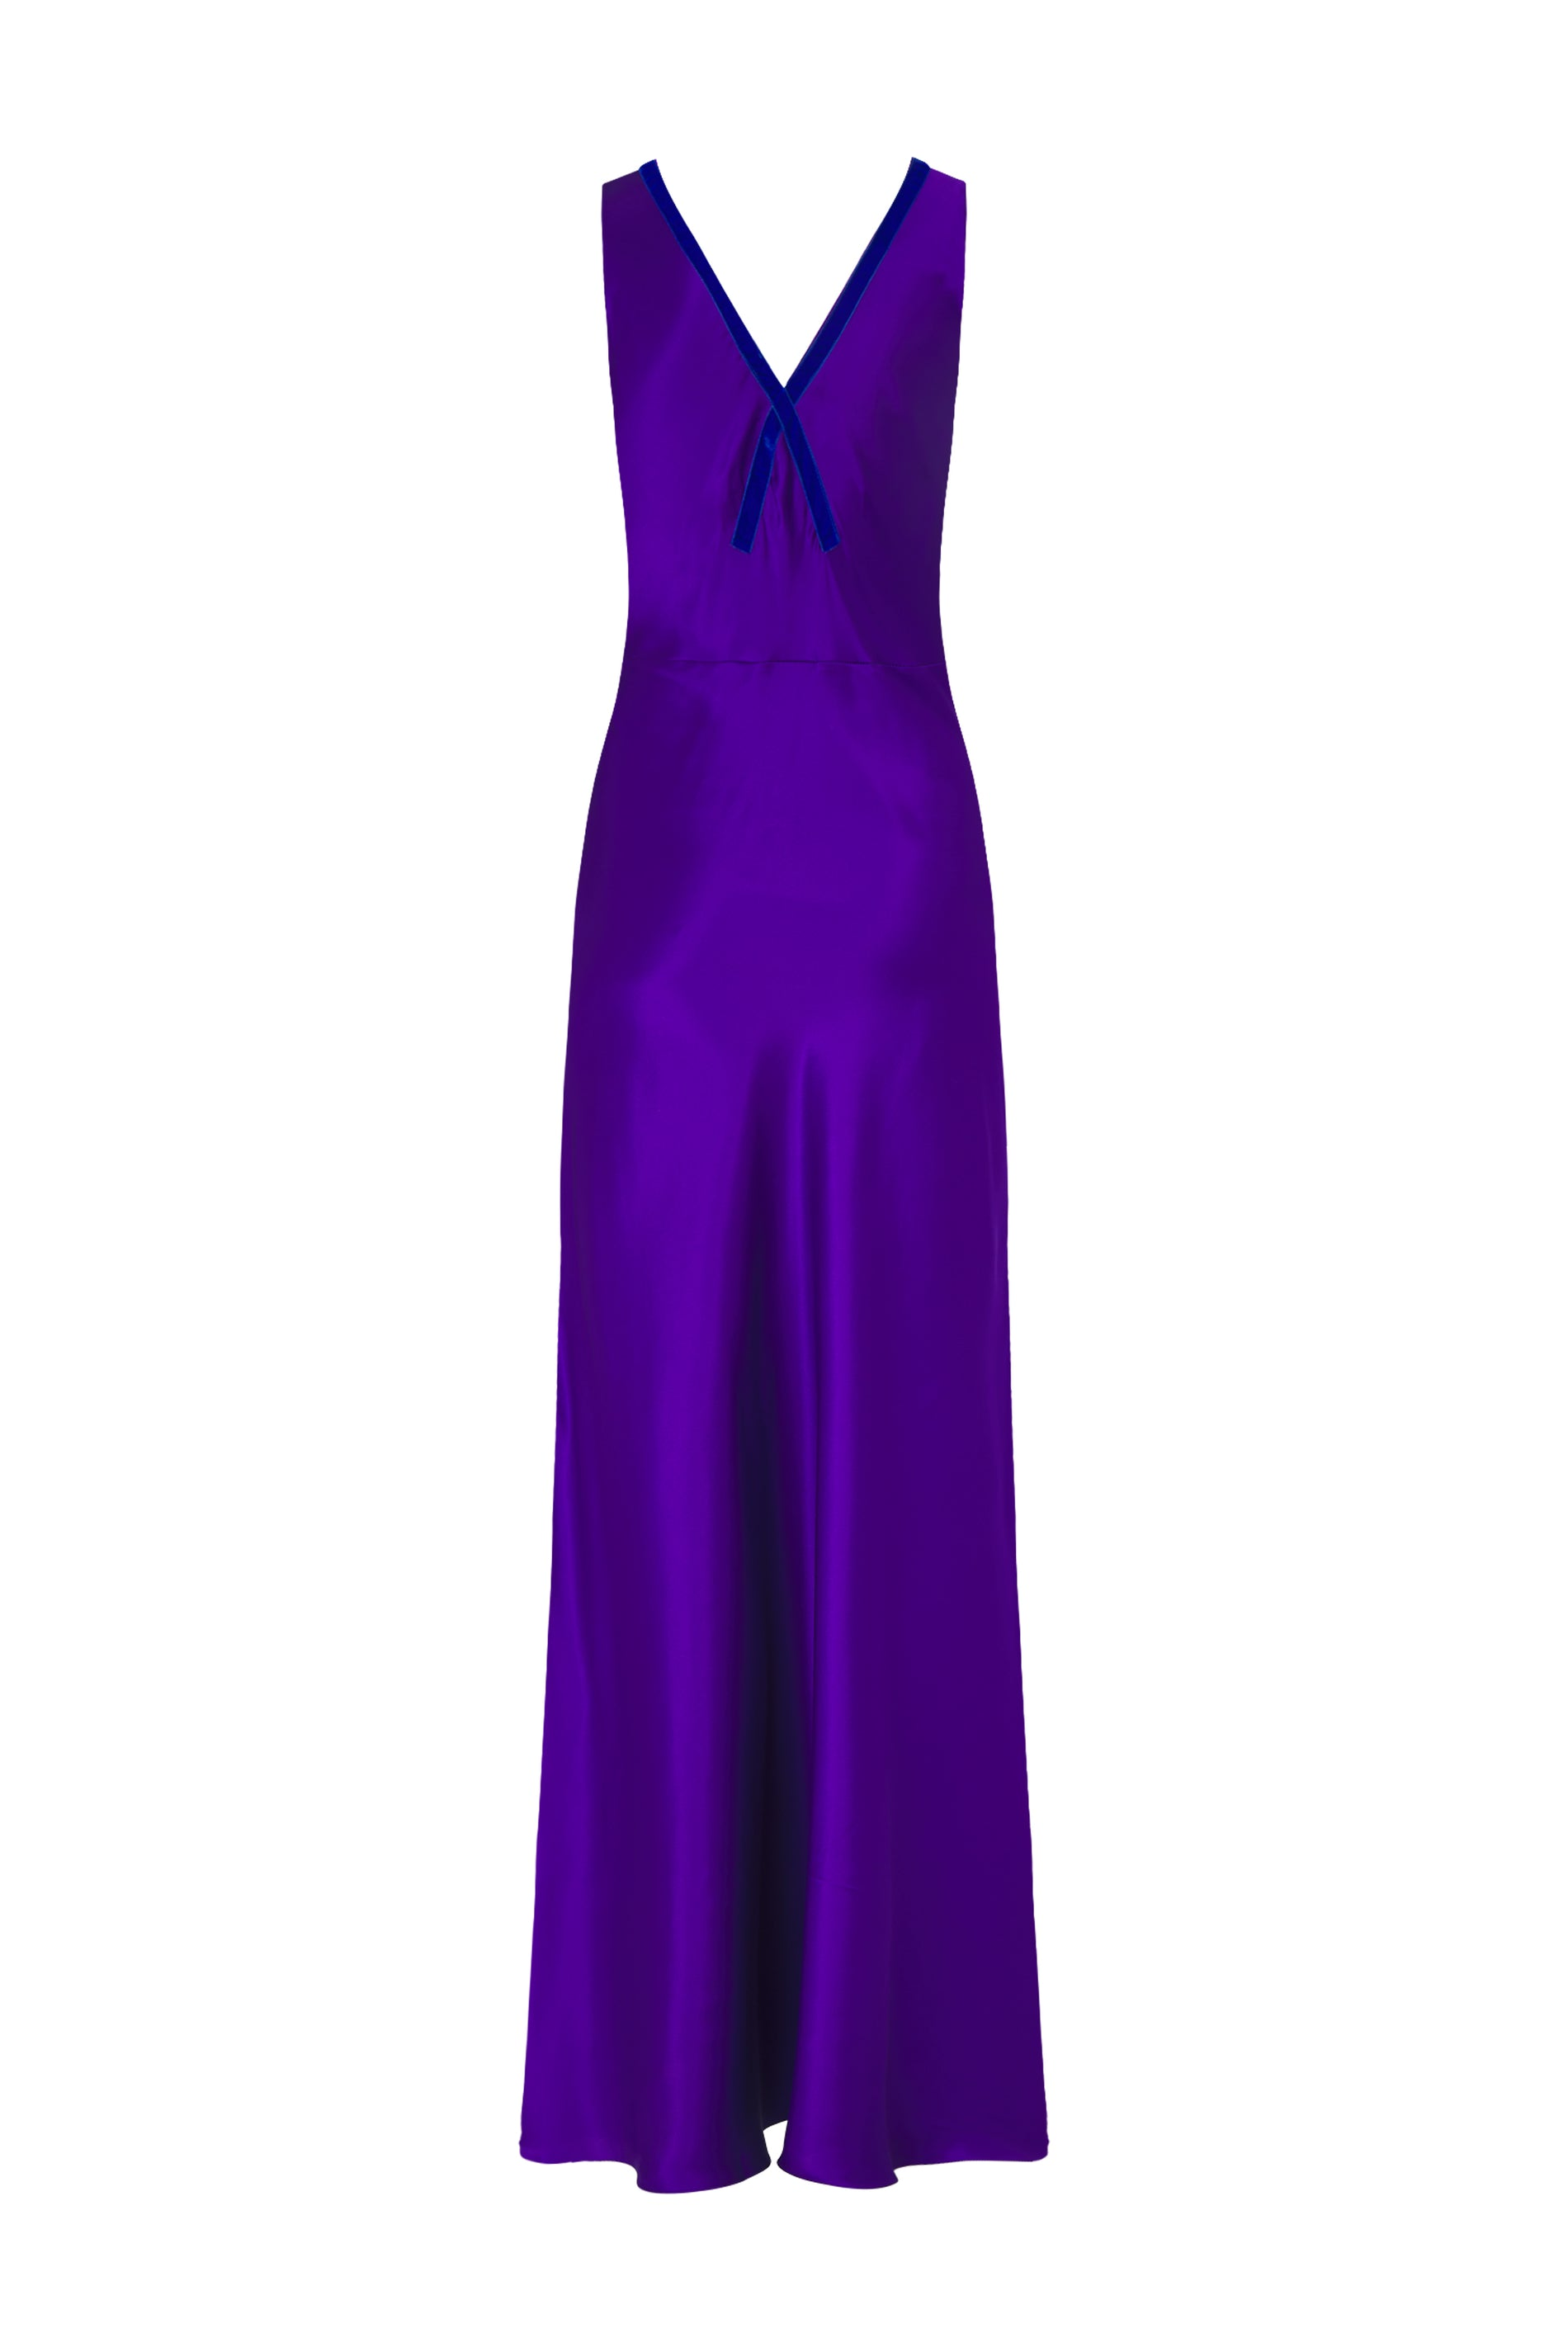 the v neck dress violet purple silk